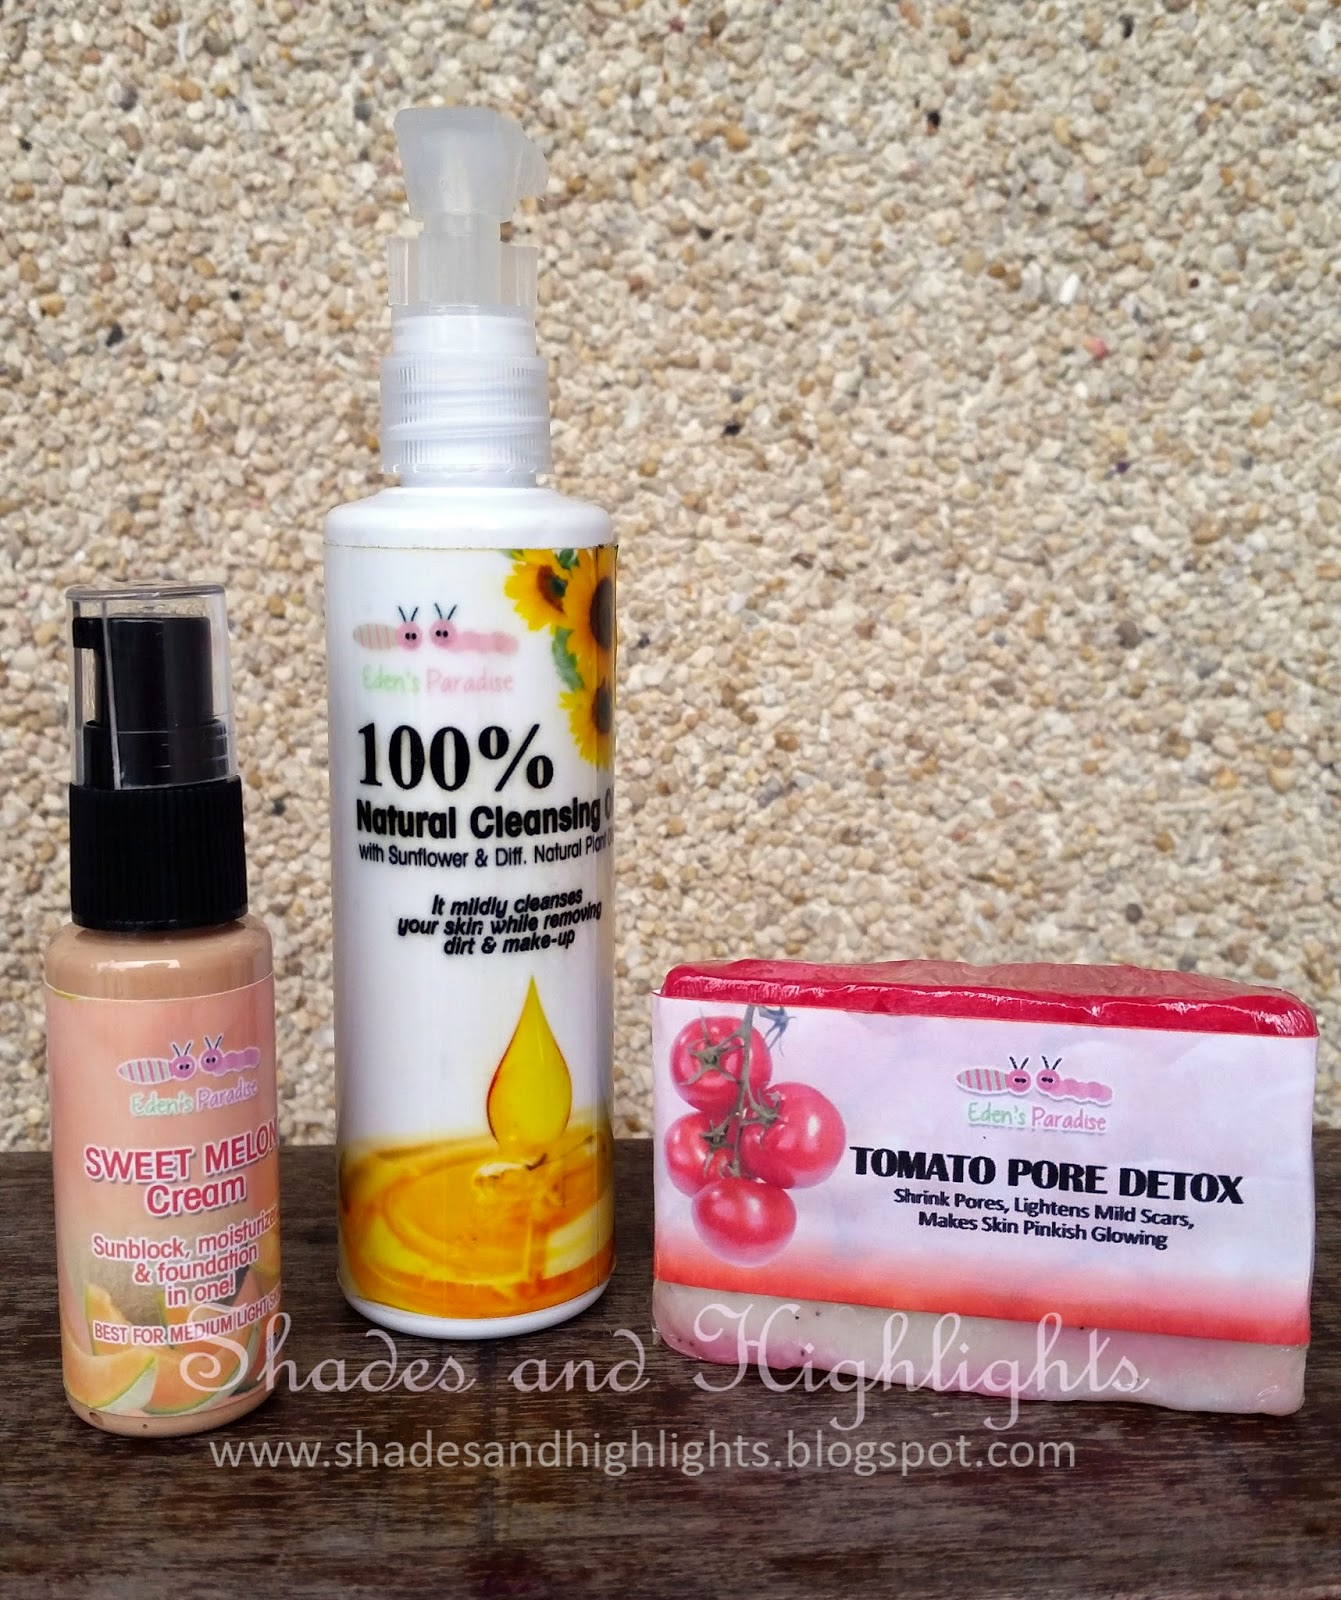 Eden's Paradise Skin Care Products